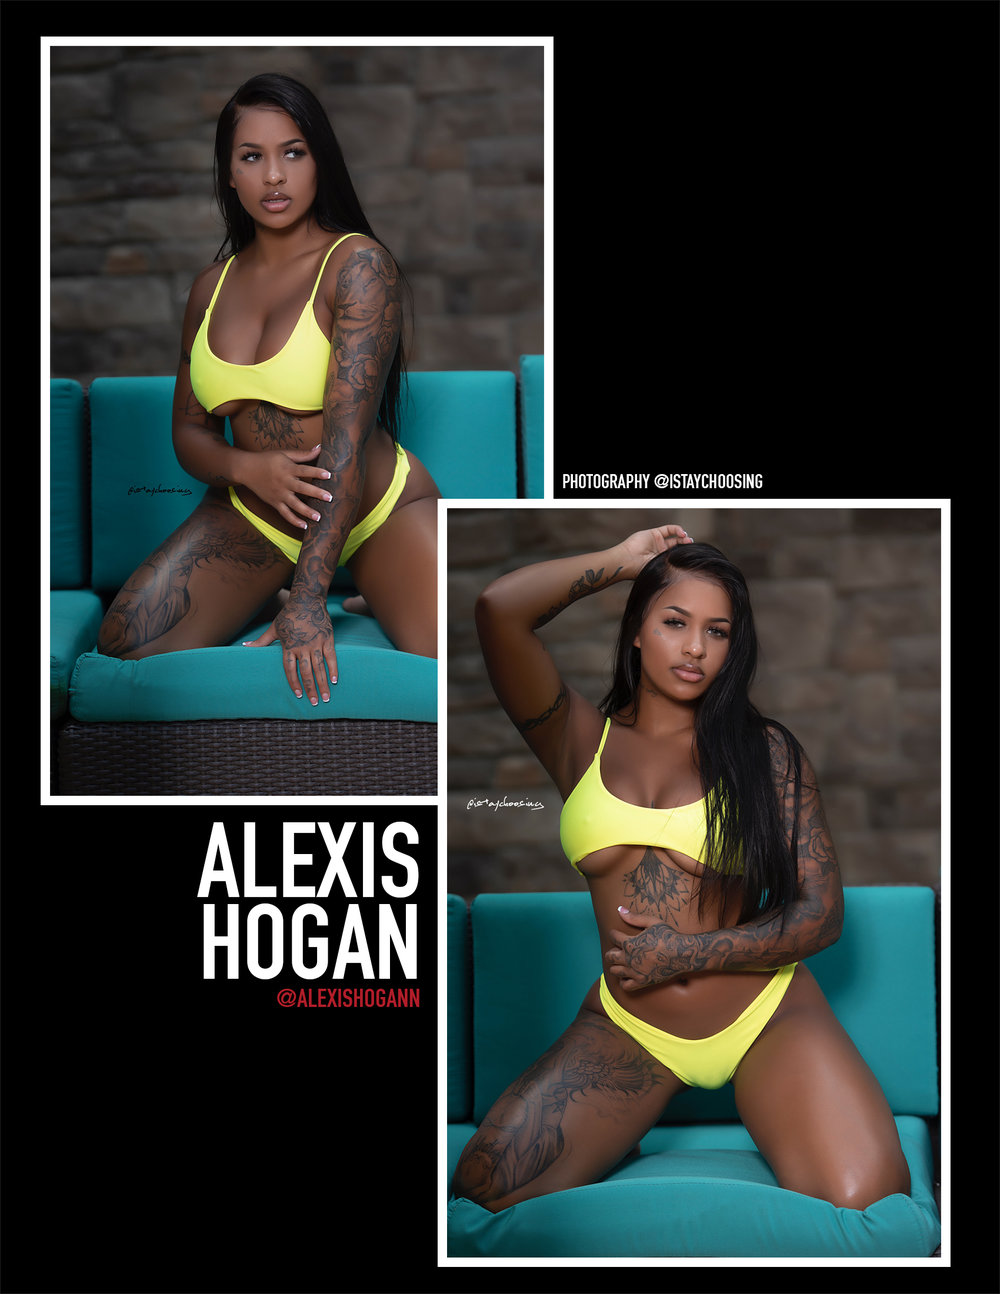 RockLan One Magazine - Alexis Hogan